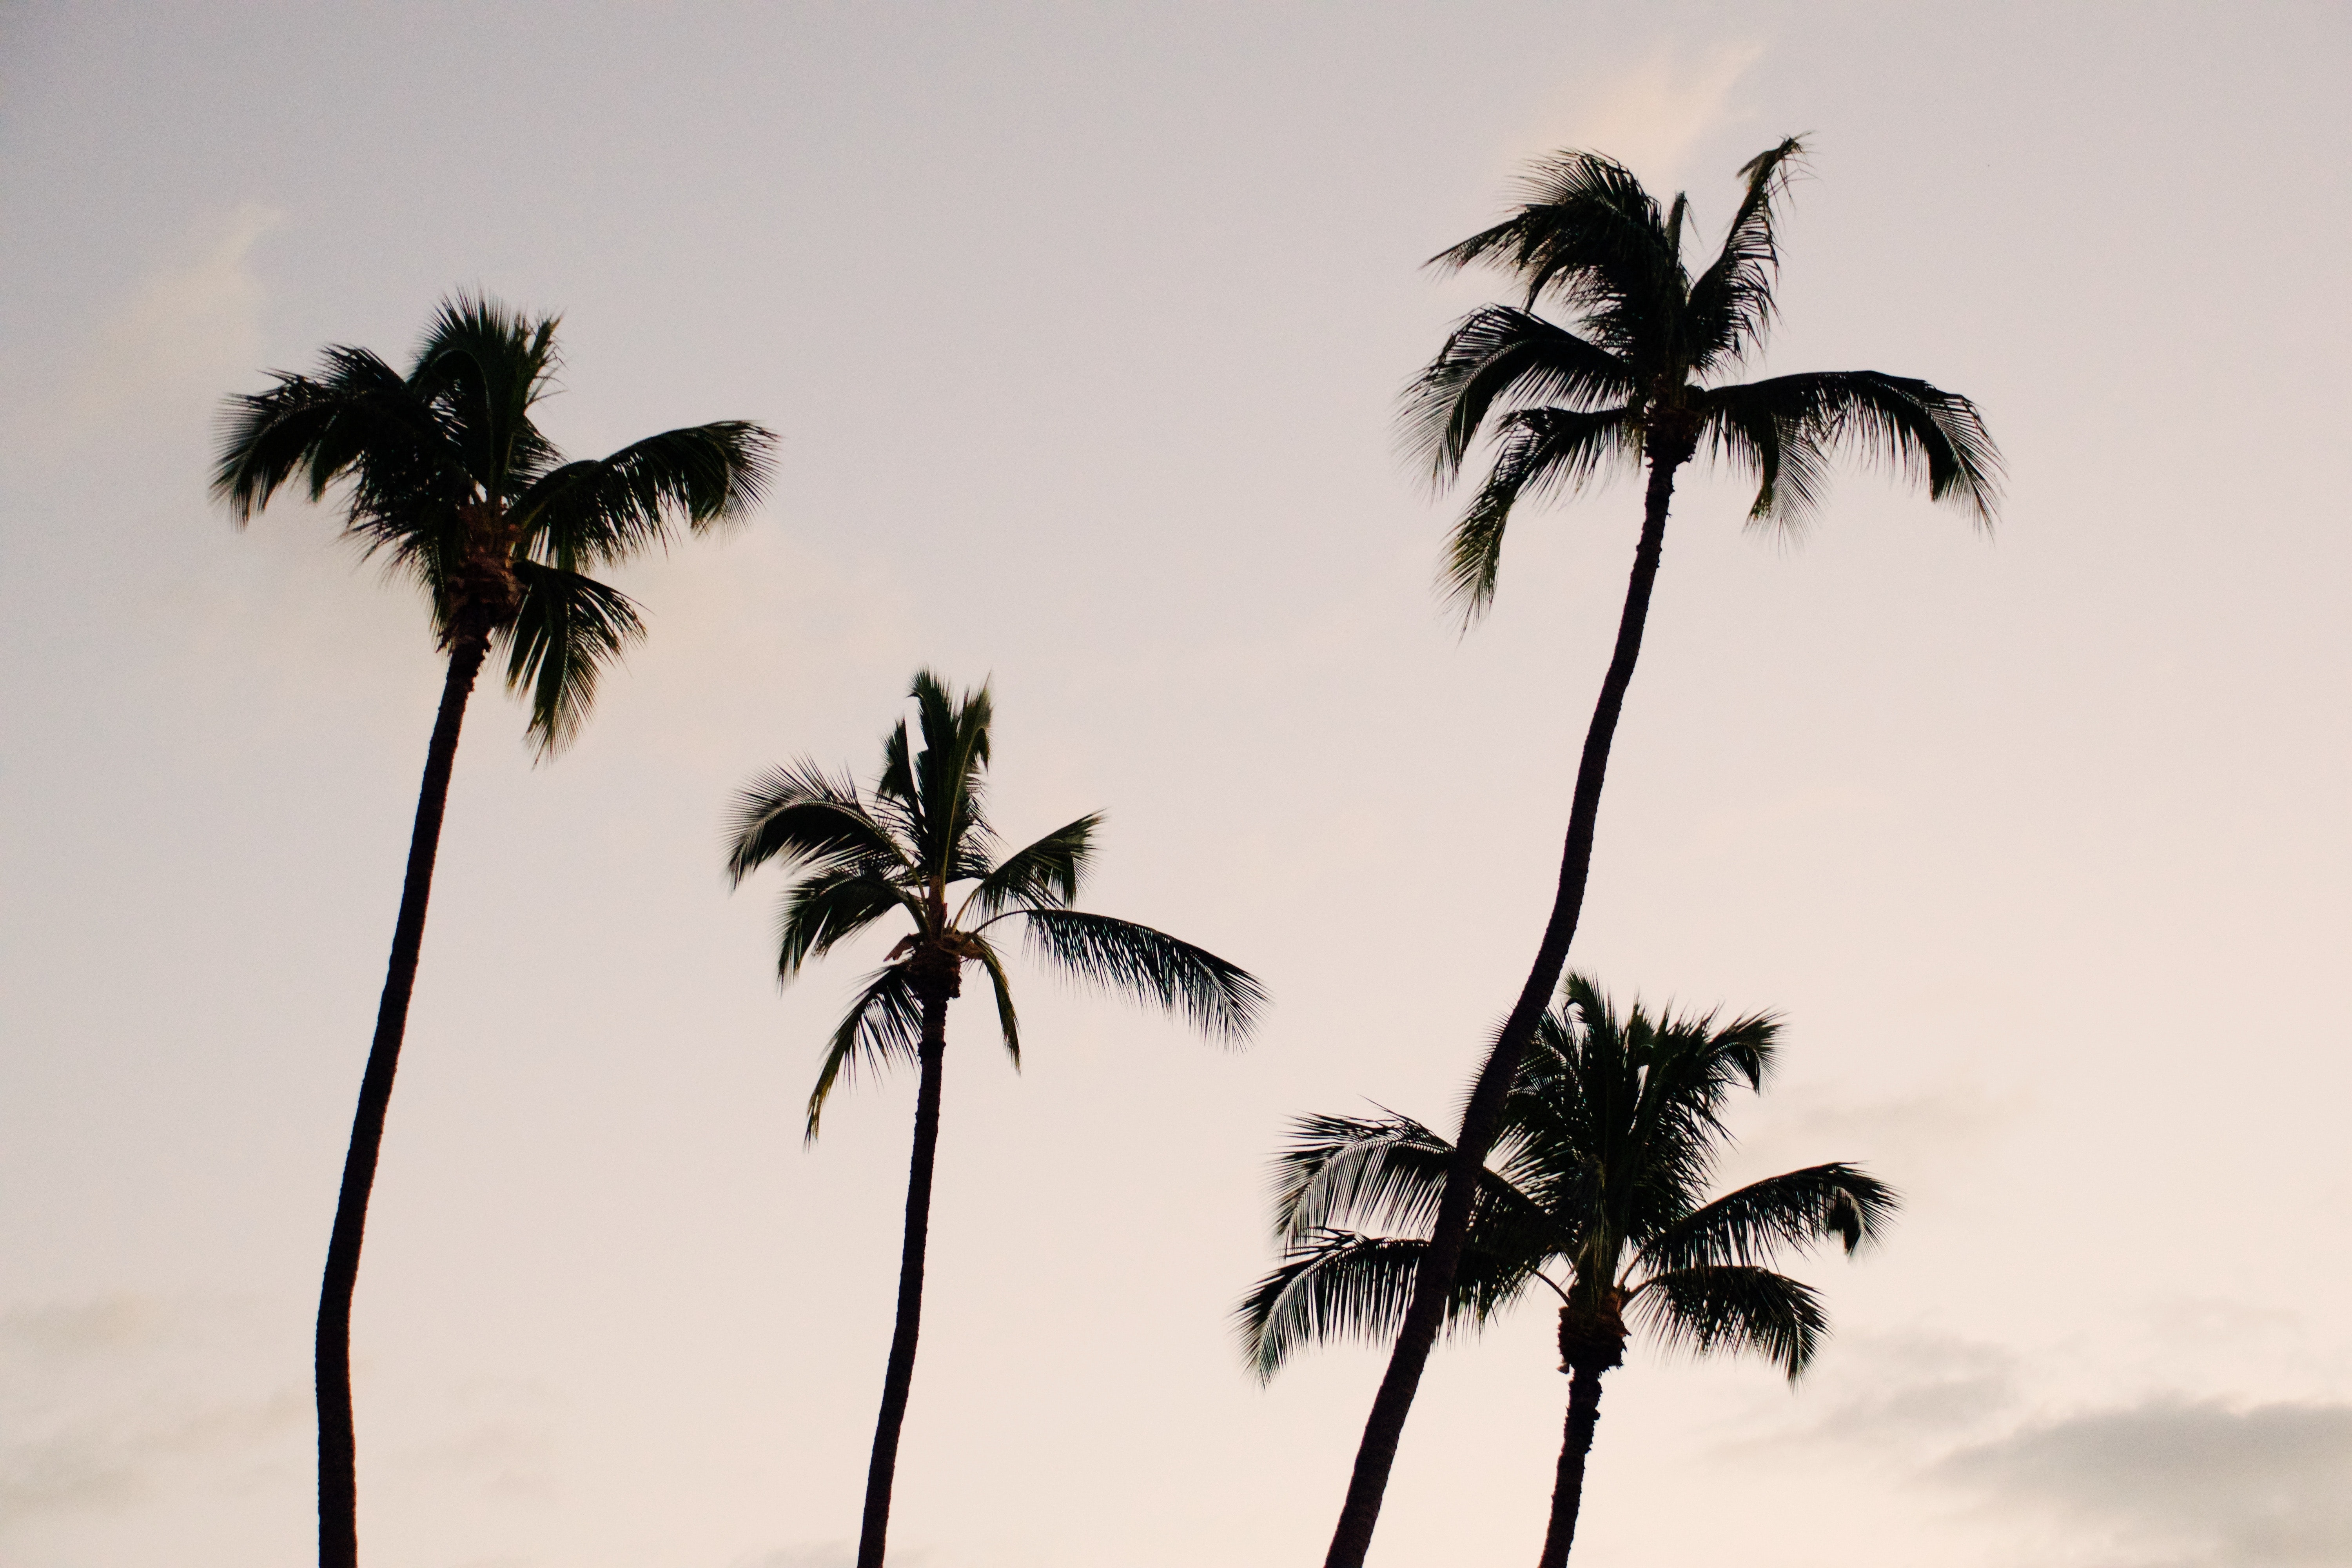 silhouette photography of four coconut palm trees